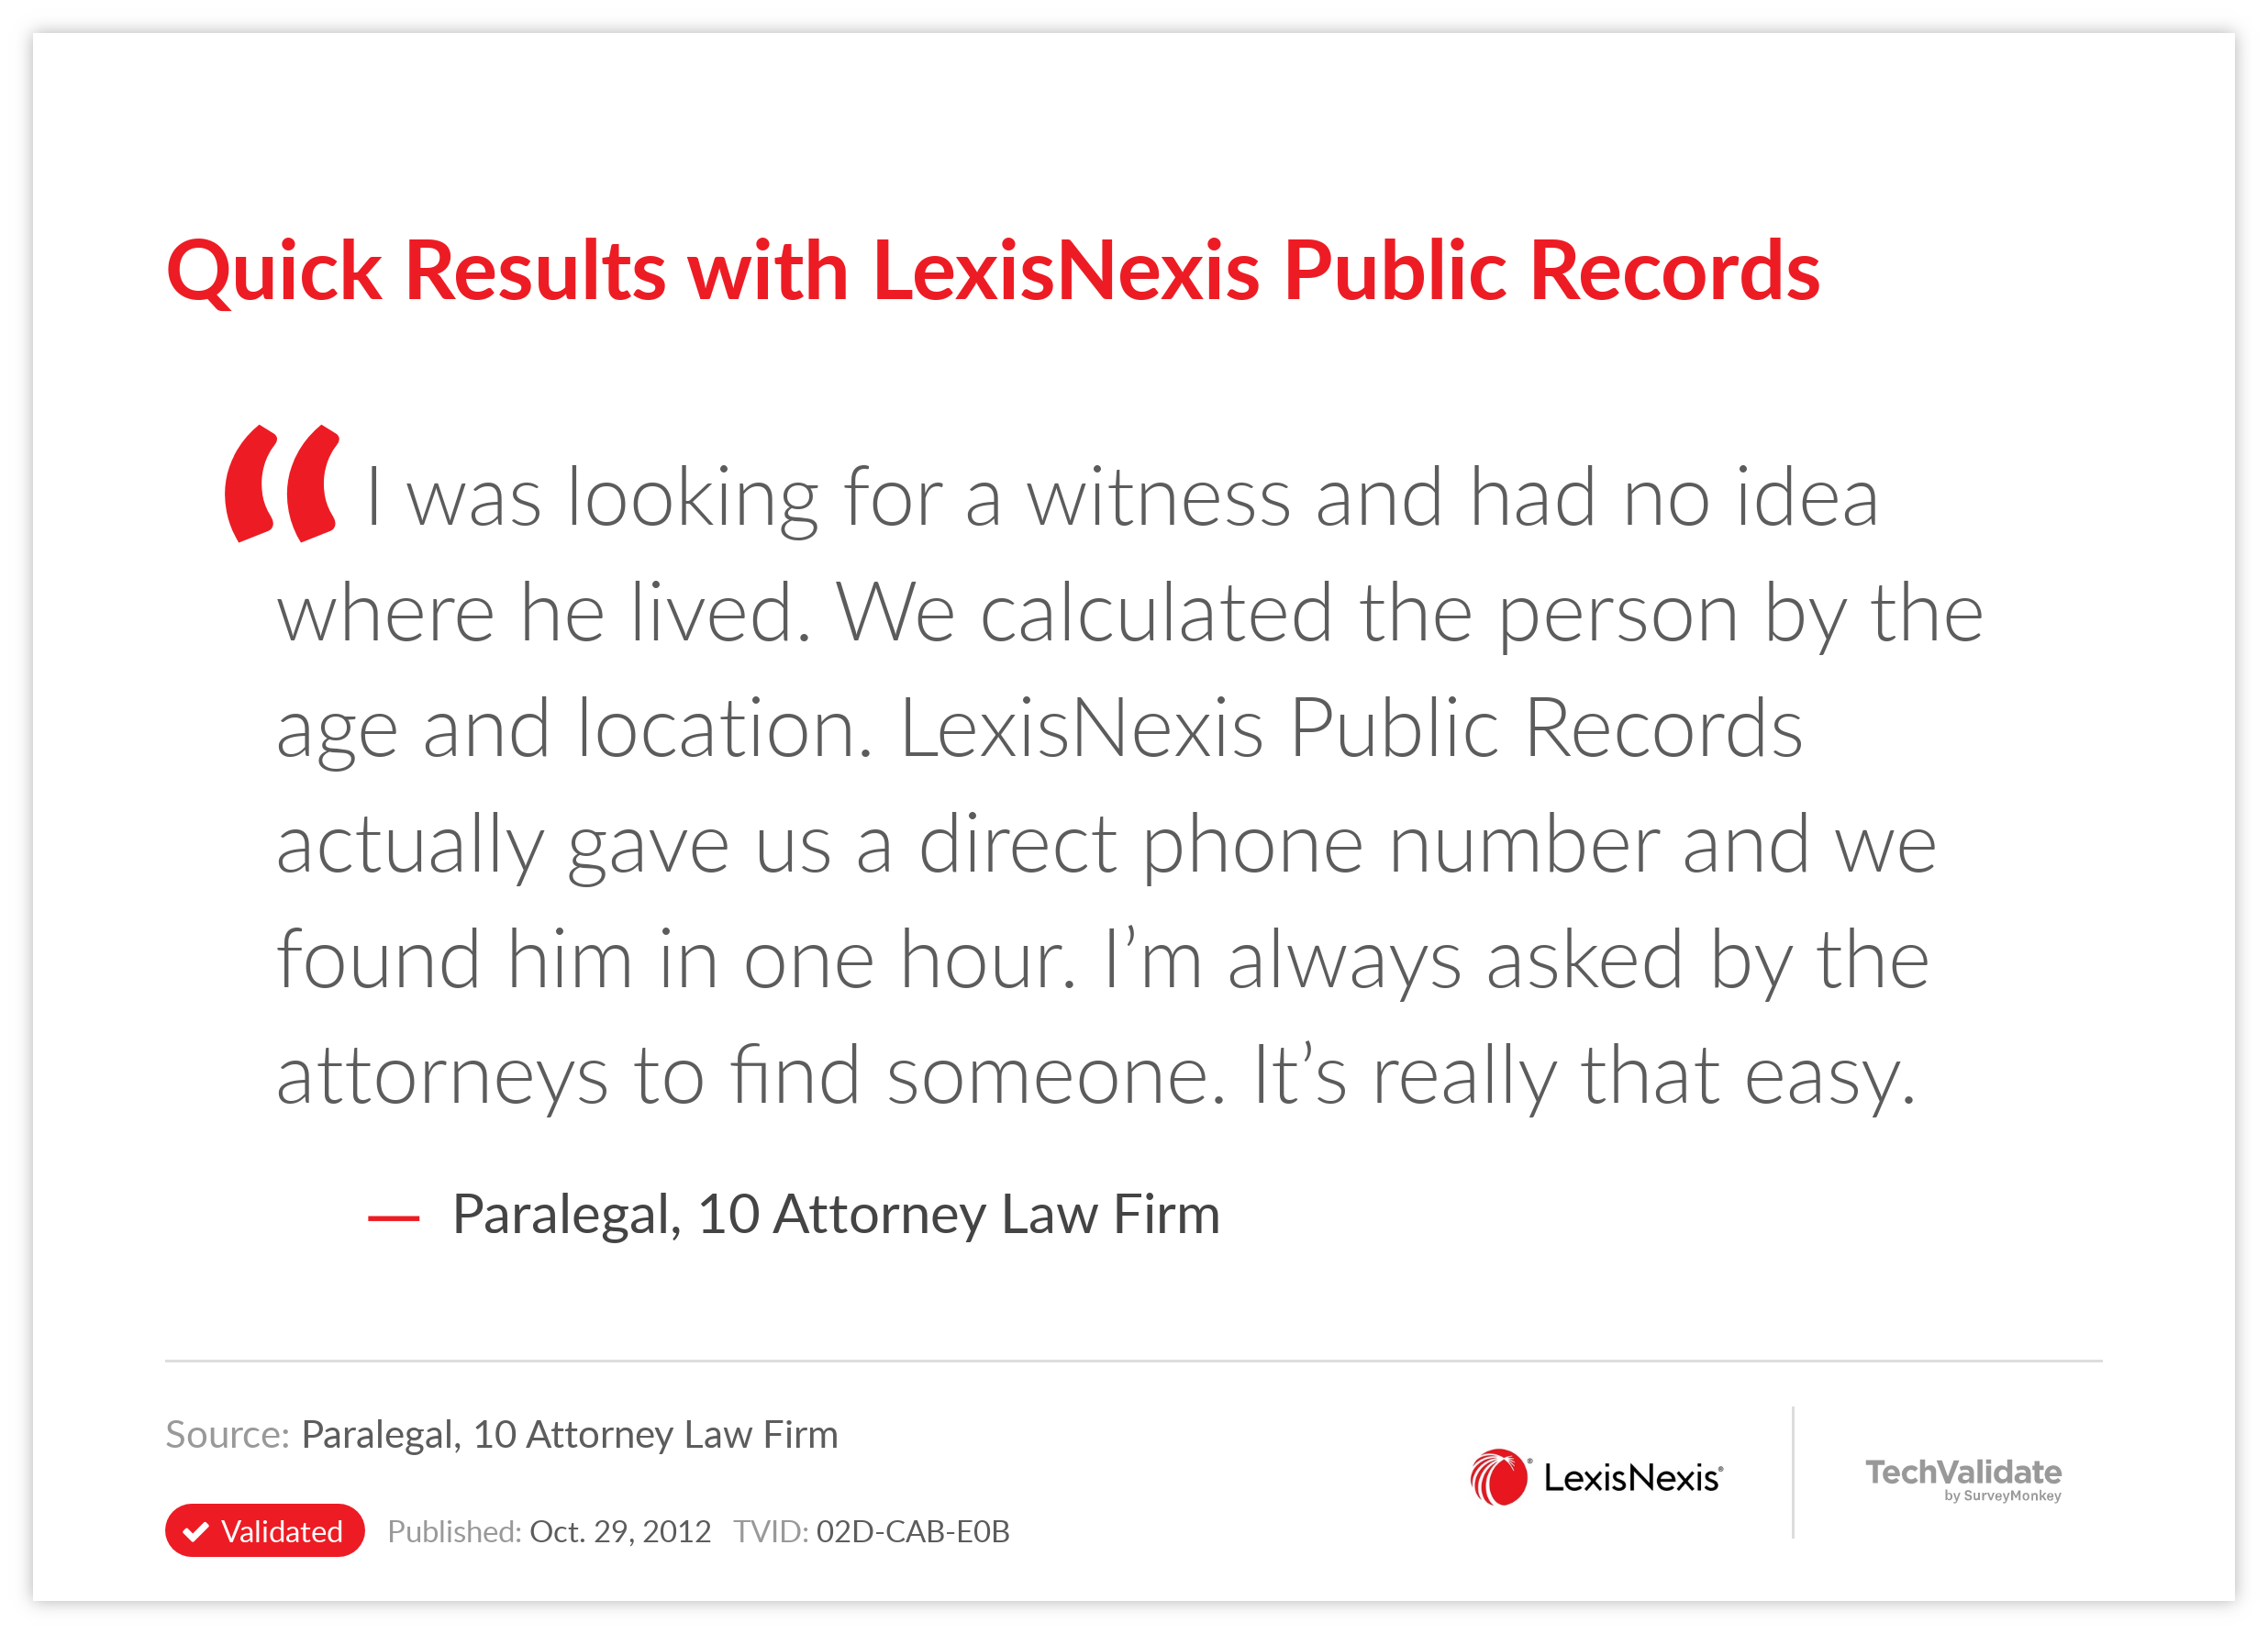 Quick Results with LexisNexis Public Records